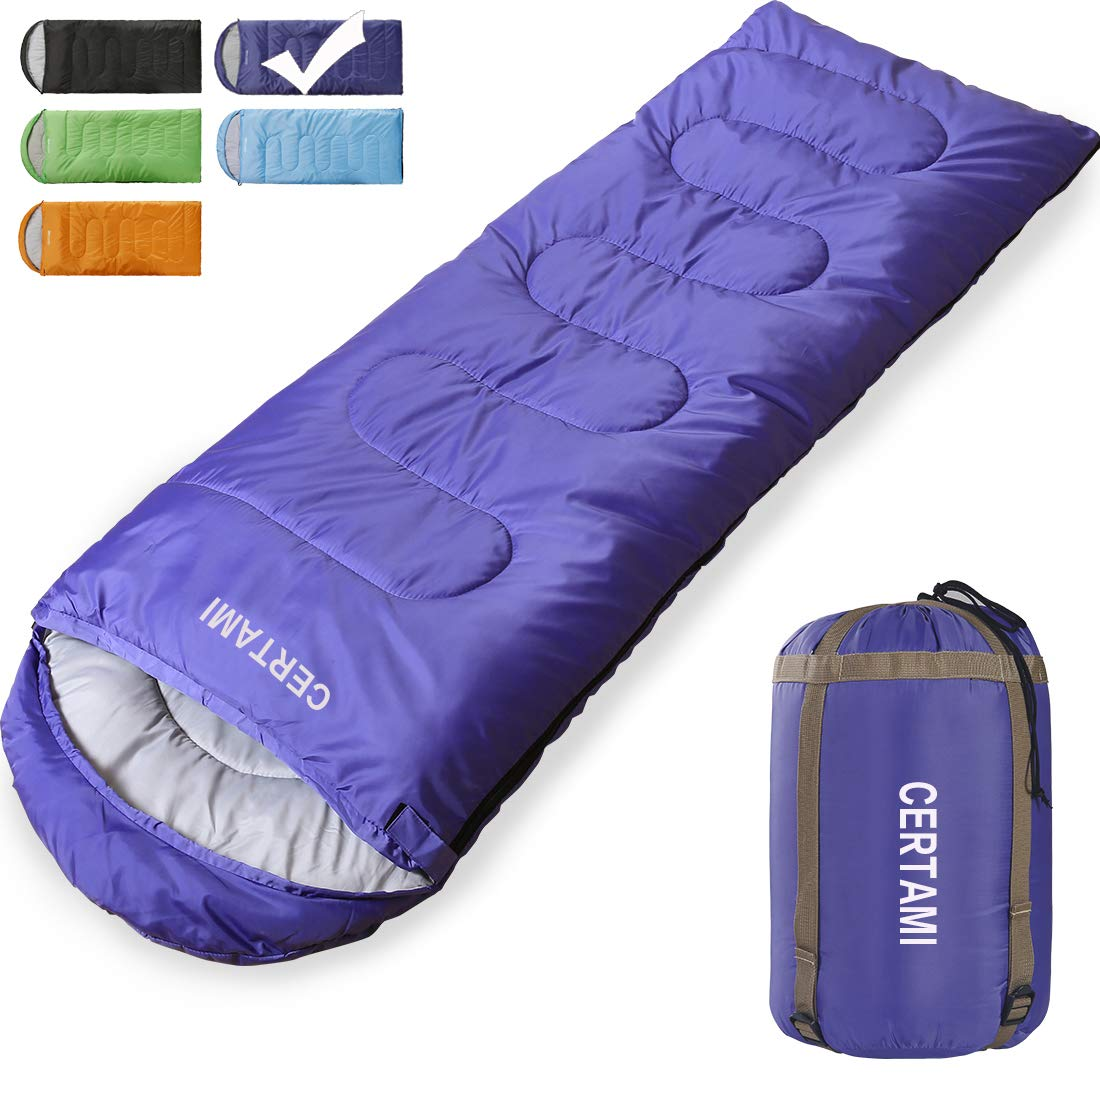 CER TAMI Sleeping Bag for Adults, Girls & Boys, Lightweight Waterproof Compact, Great for 4 Season Warm & Cold Weather, Perfect for Outdoor Backpacking, Camping, Hiking. (Purple/Right Zip) by CER TAMI